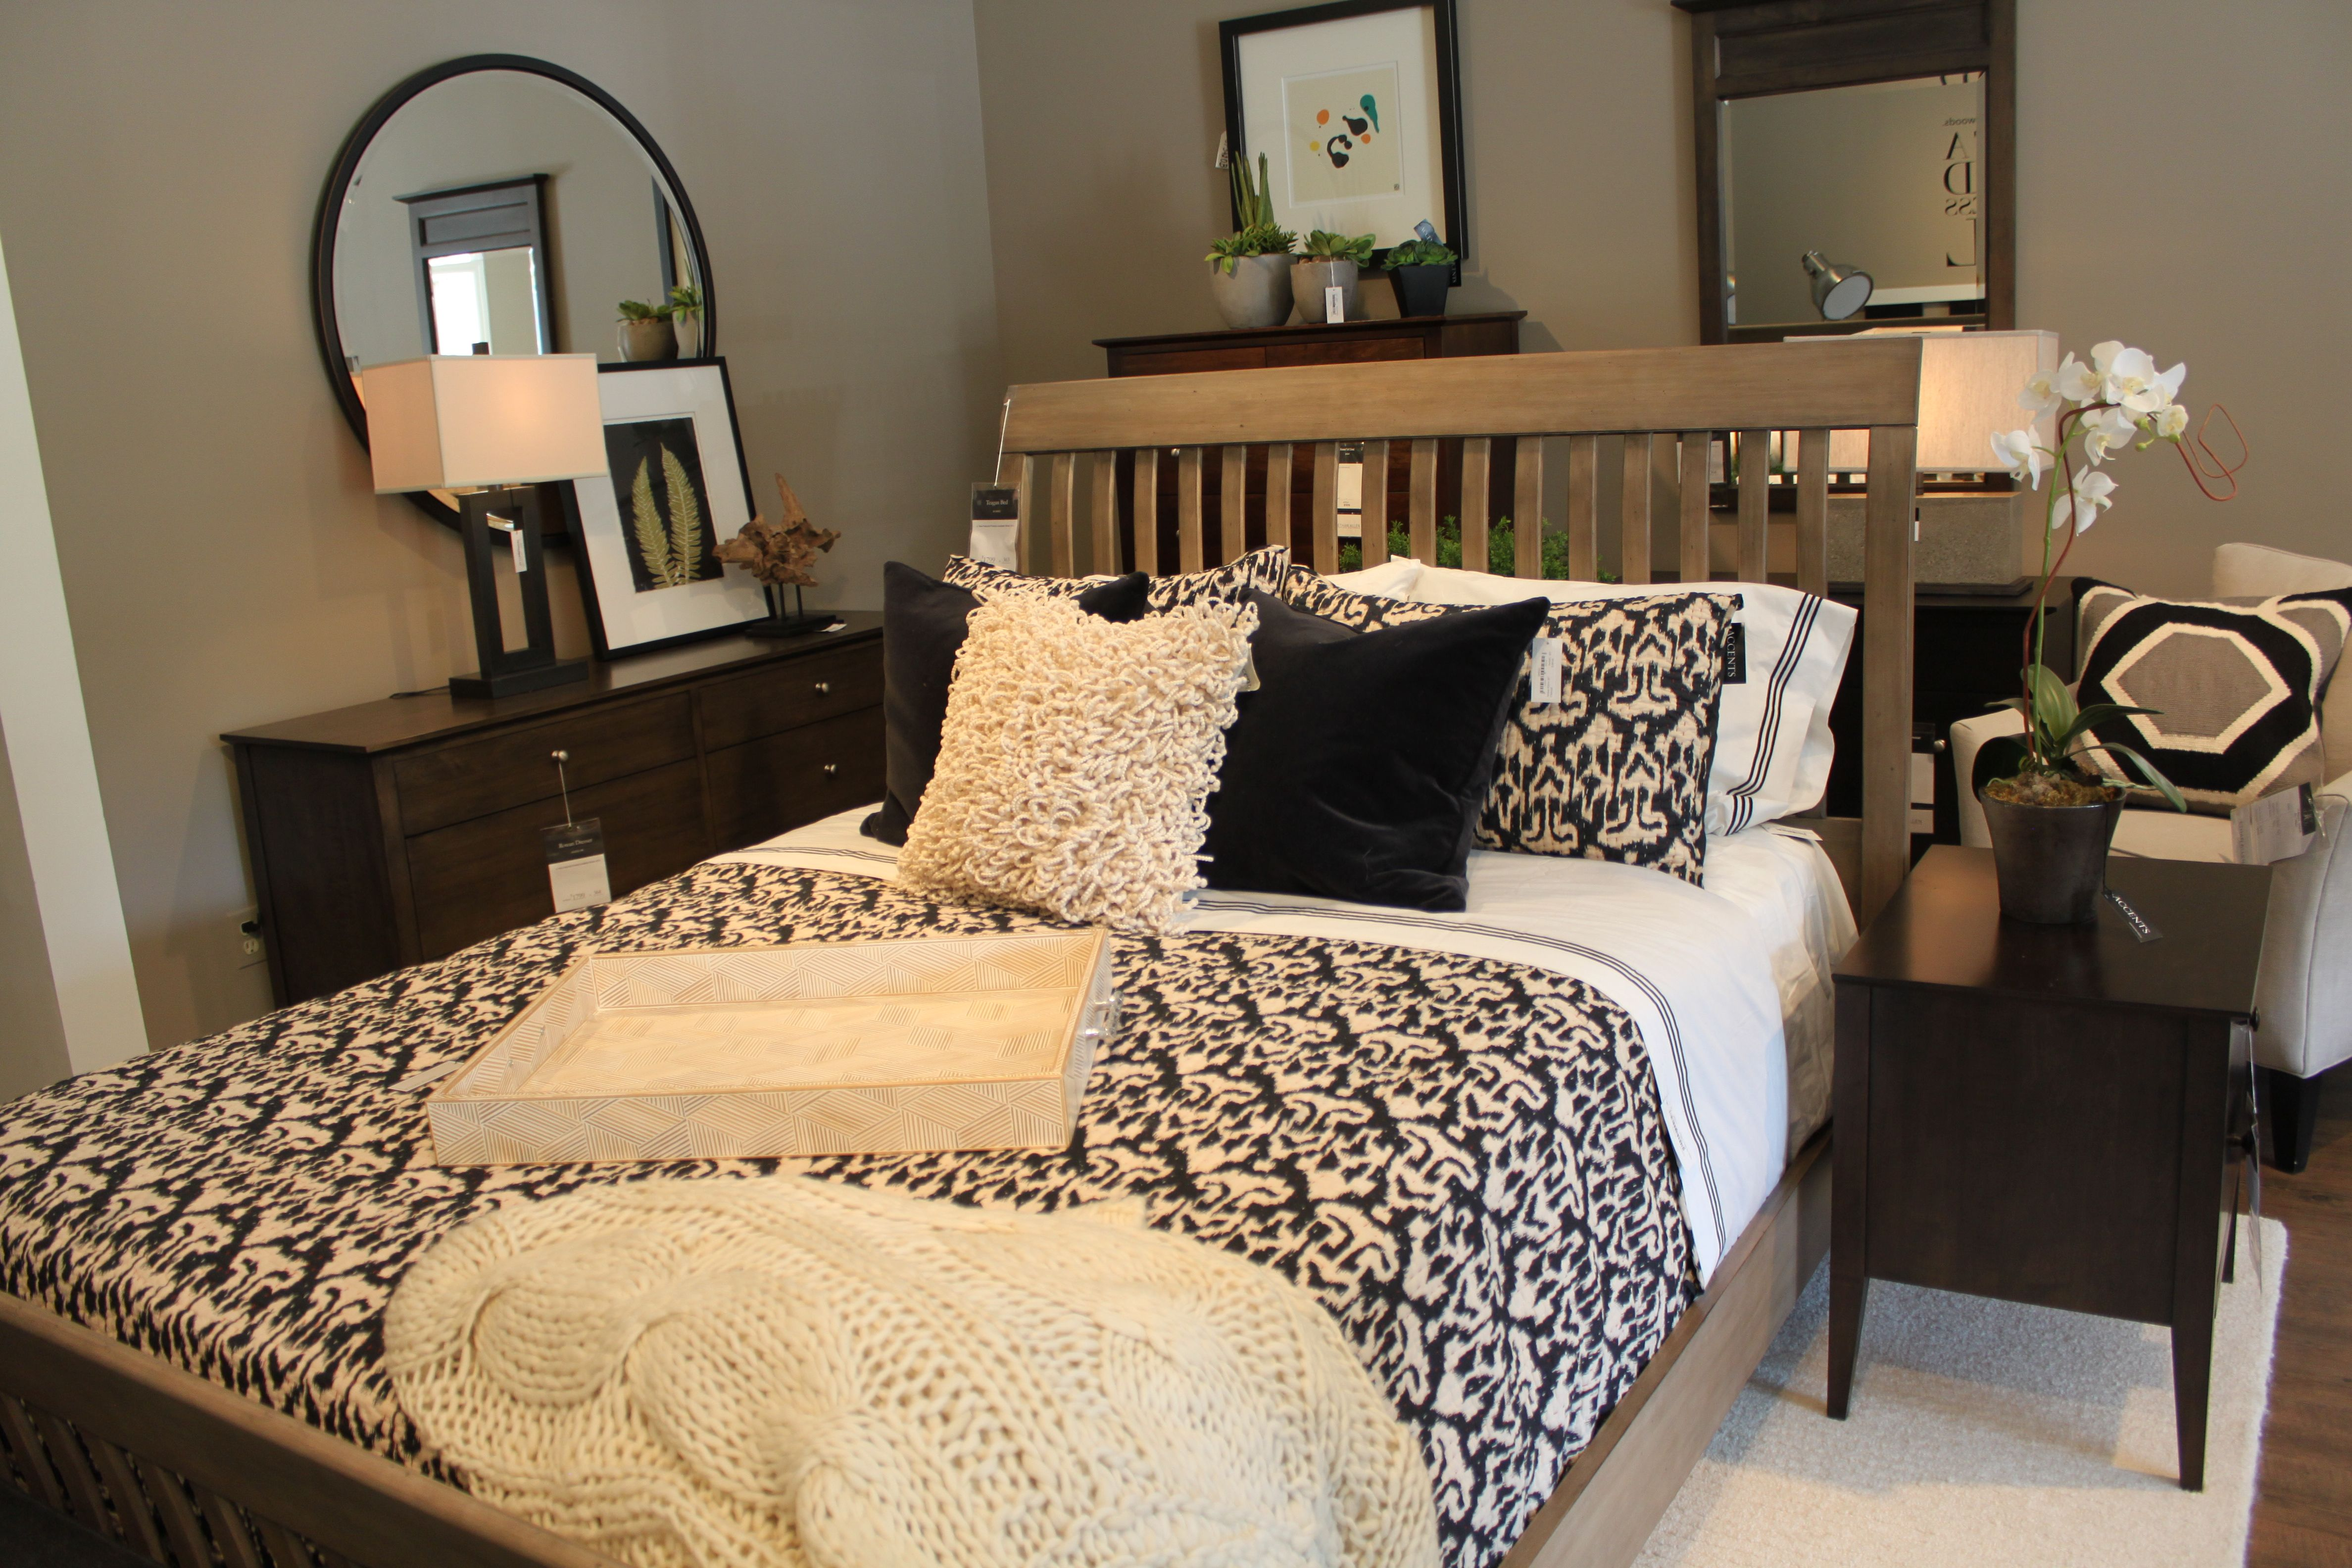 Bedroom Sets Ethan Allen ethan allen bedroom sets ~ icontrall for .